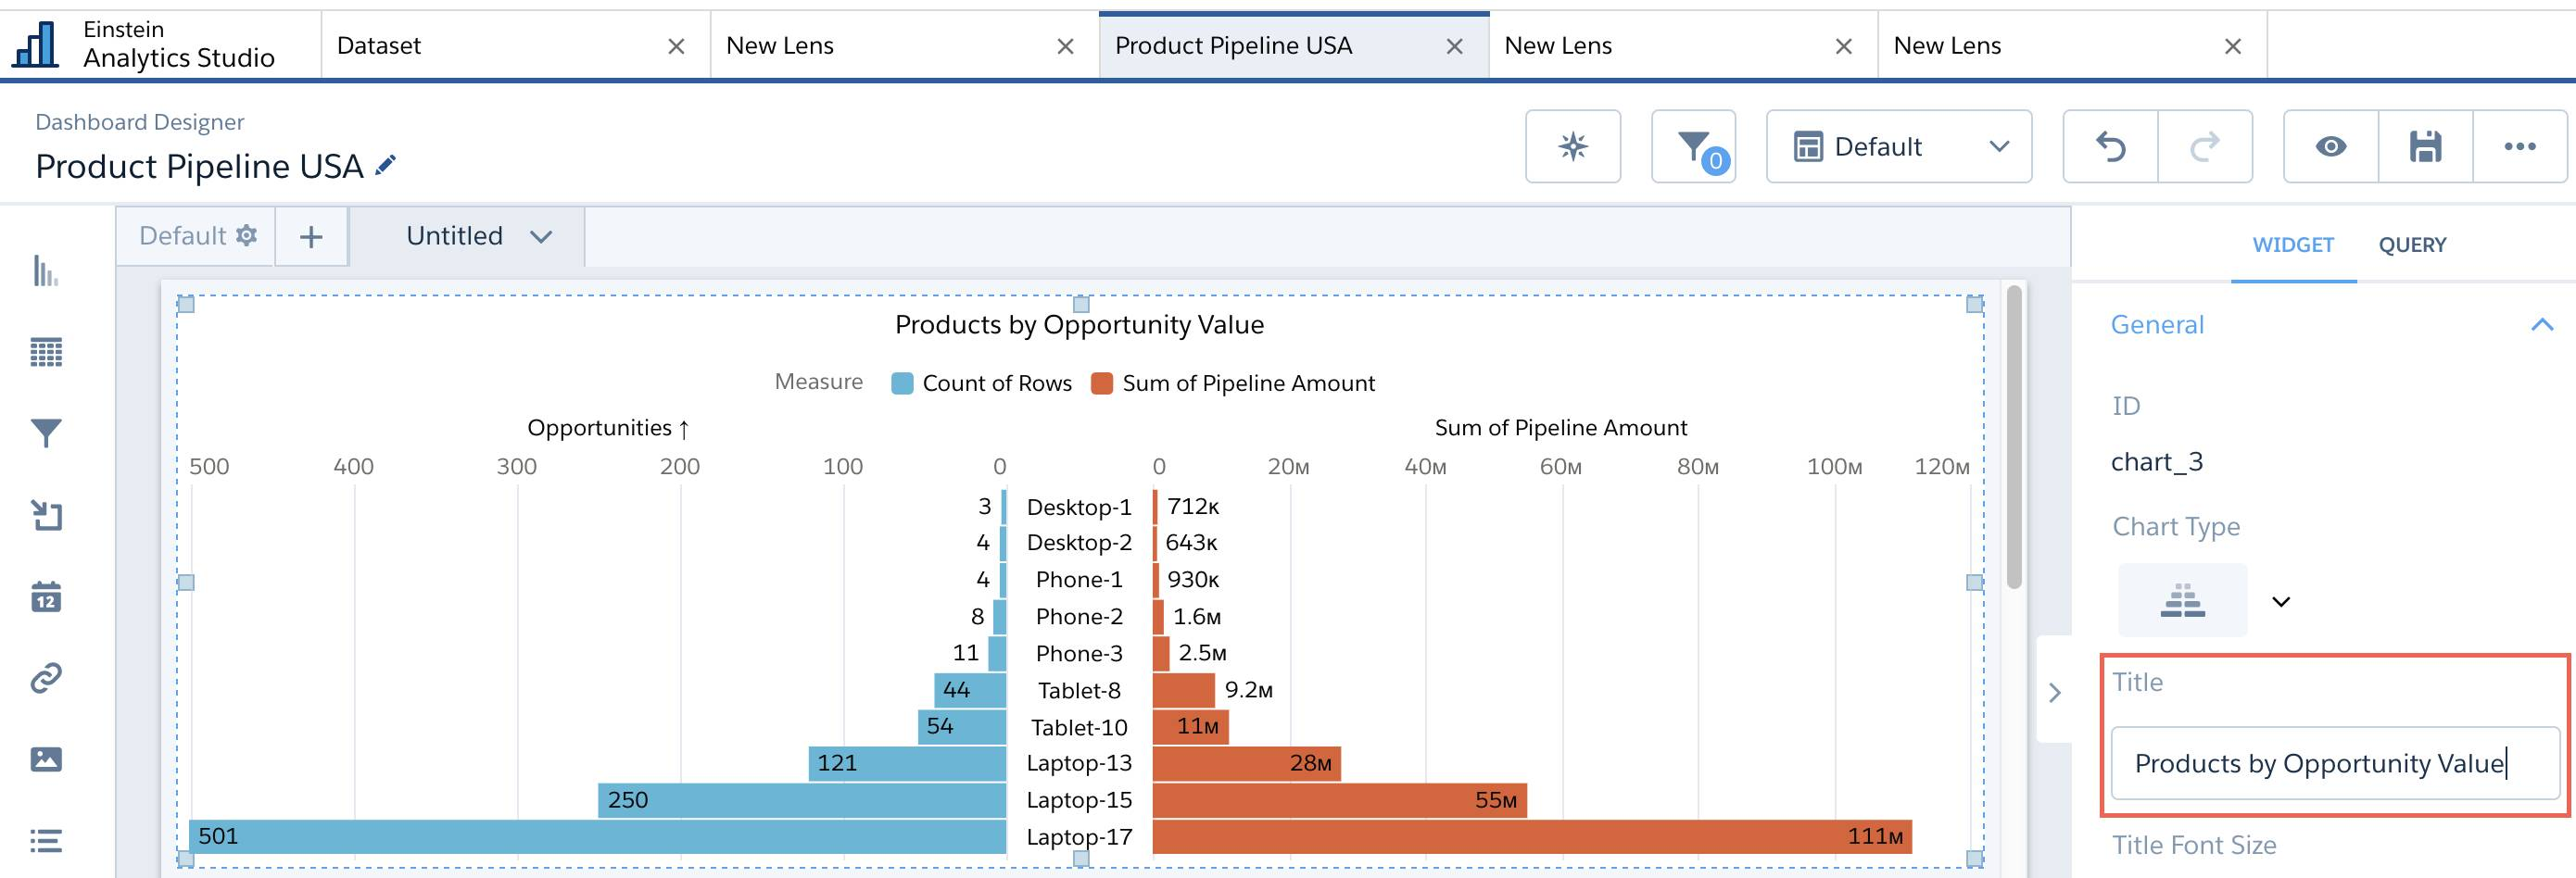 Product pipeline pyramid chart title in dashboard designer